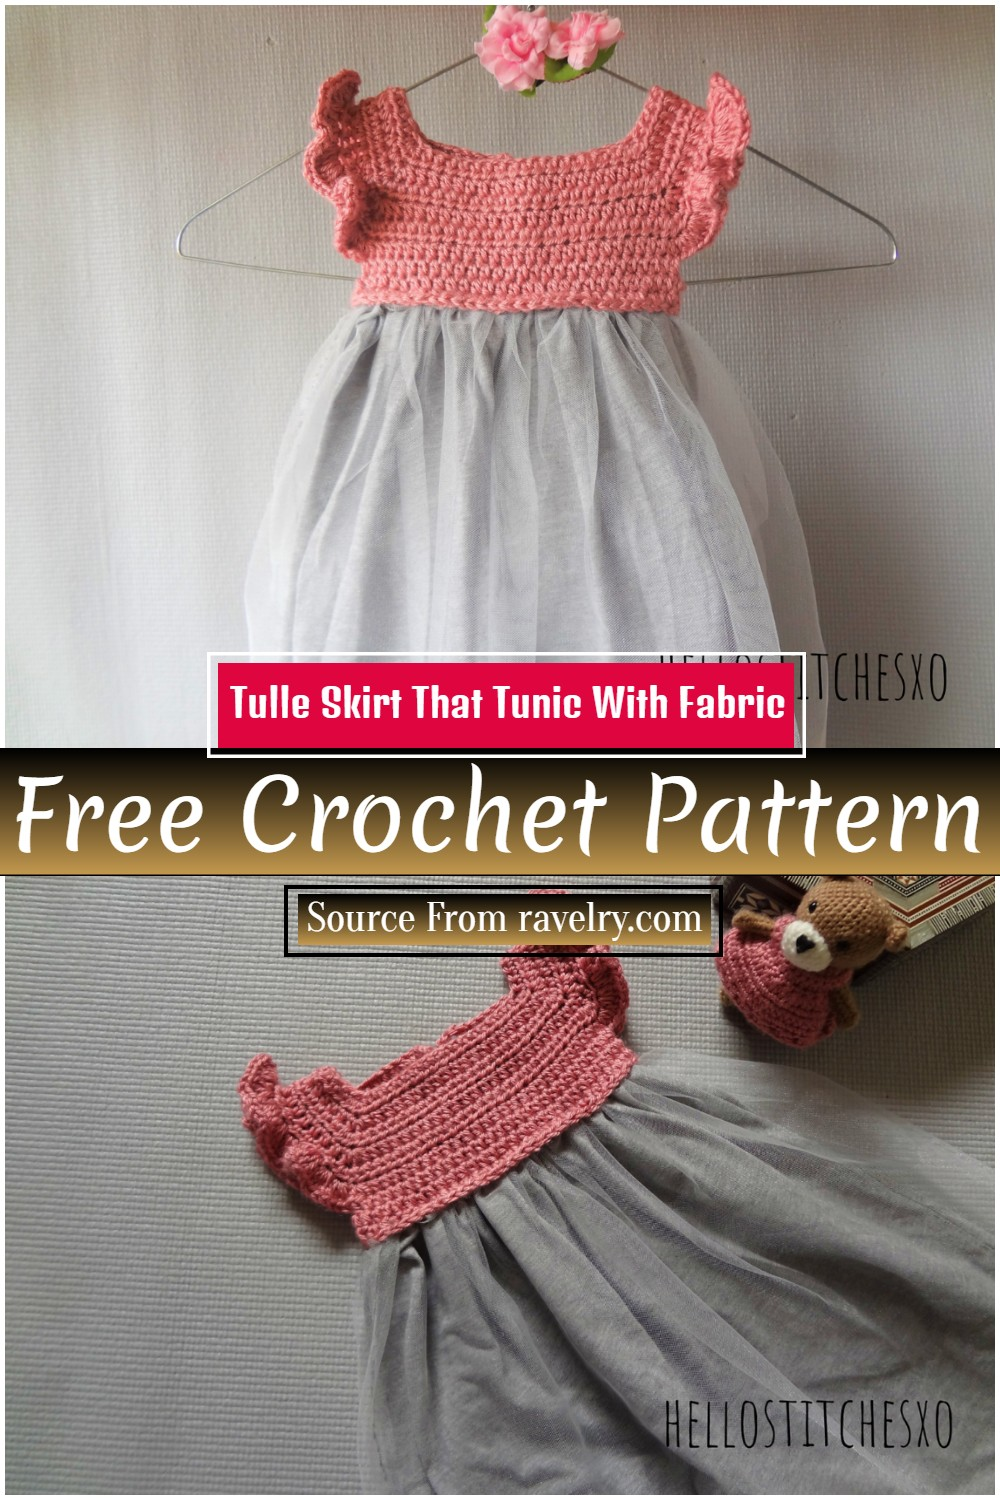 Crochet Tulle Skirt Pattern That Tunic With Fabric